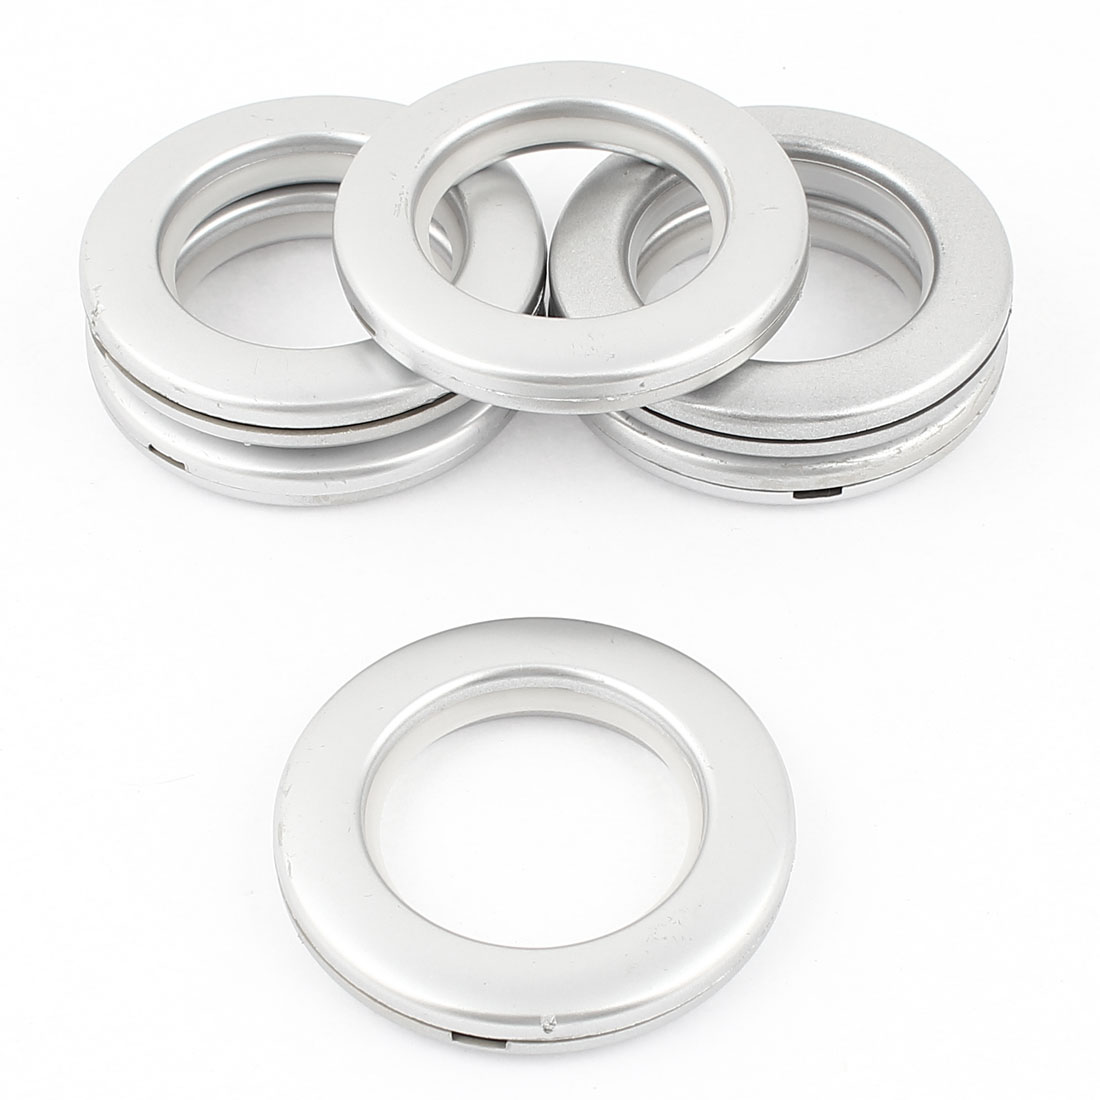 Silver Tone Round Shape Curtain Rings 41mm Inside Diameter 6 Pcs